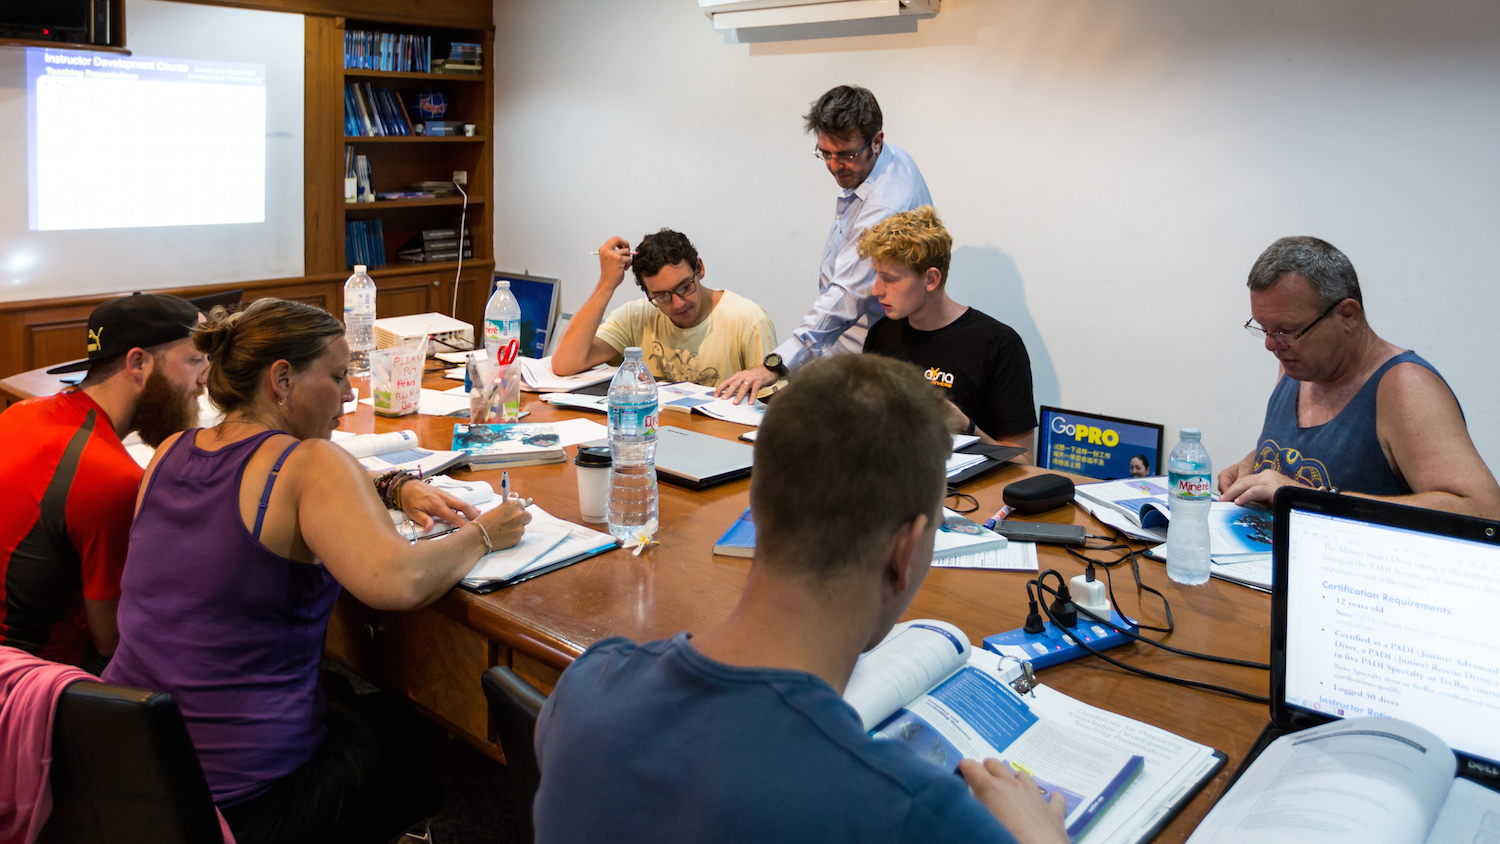 idckohtao.com-padi-cdtc-prep-teaching-IDC-candidates-with-matt-bolton-on-kohtao